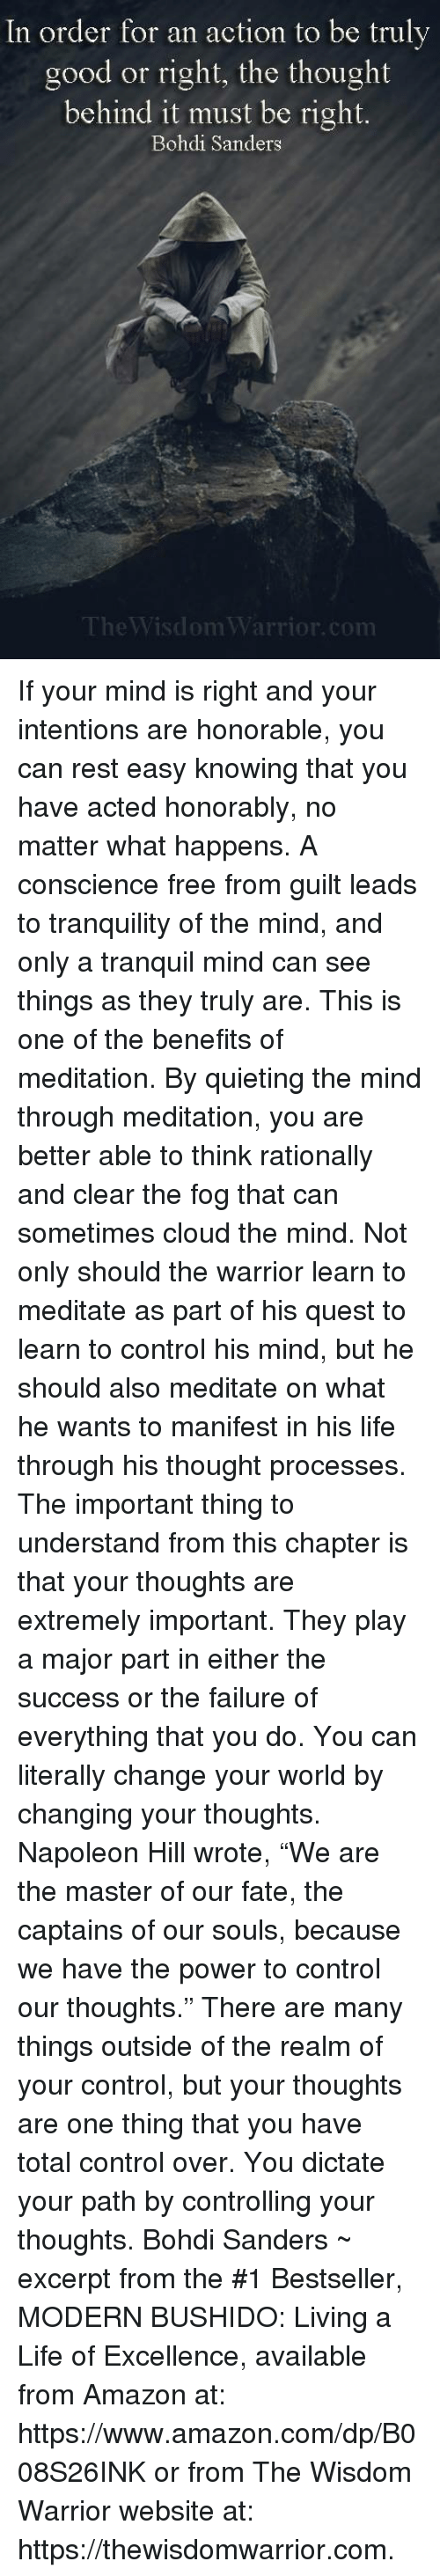 wisdom in the mind is better Proverbs - inspirational words of wisdom proverbs are wisdom of the experienced passed down from generation to generation they.